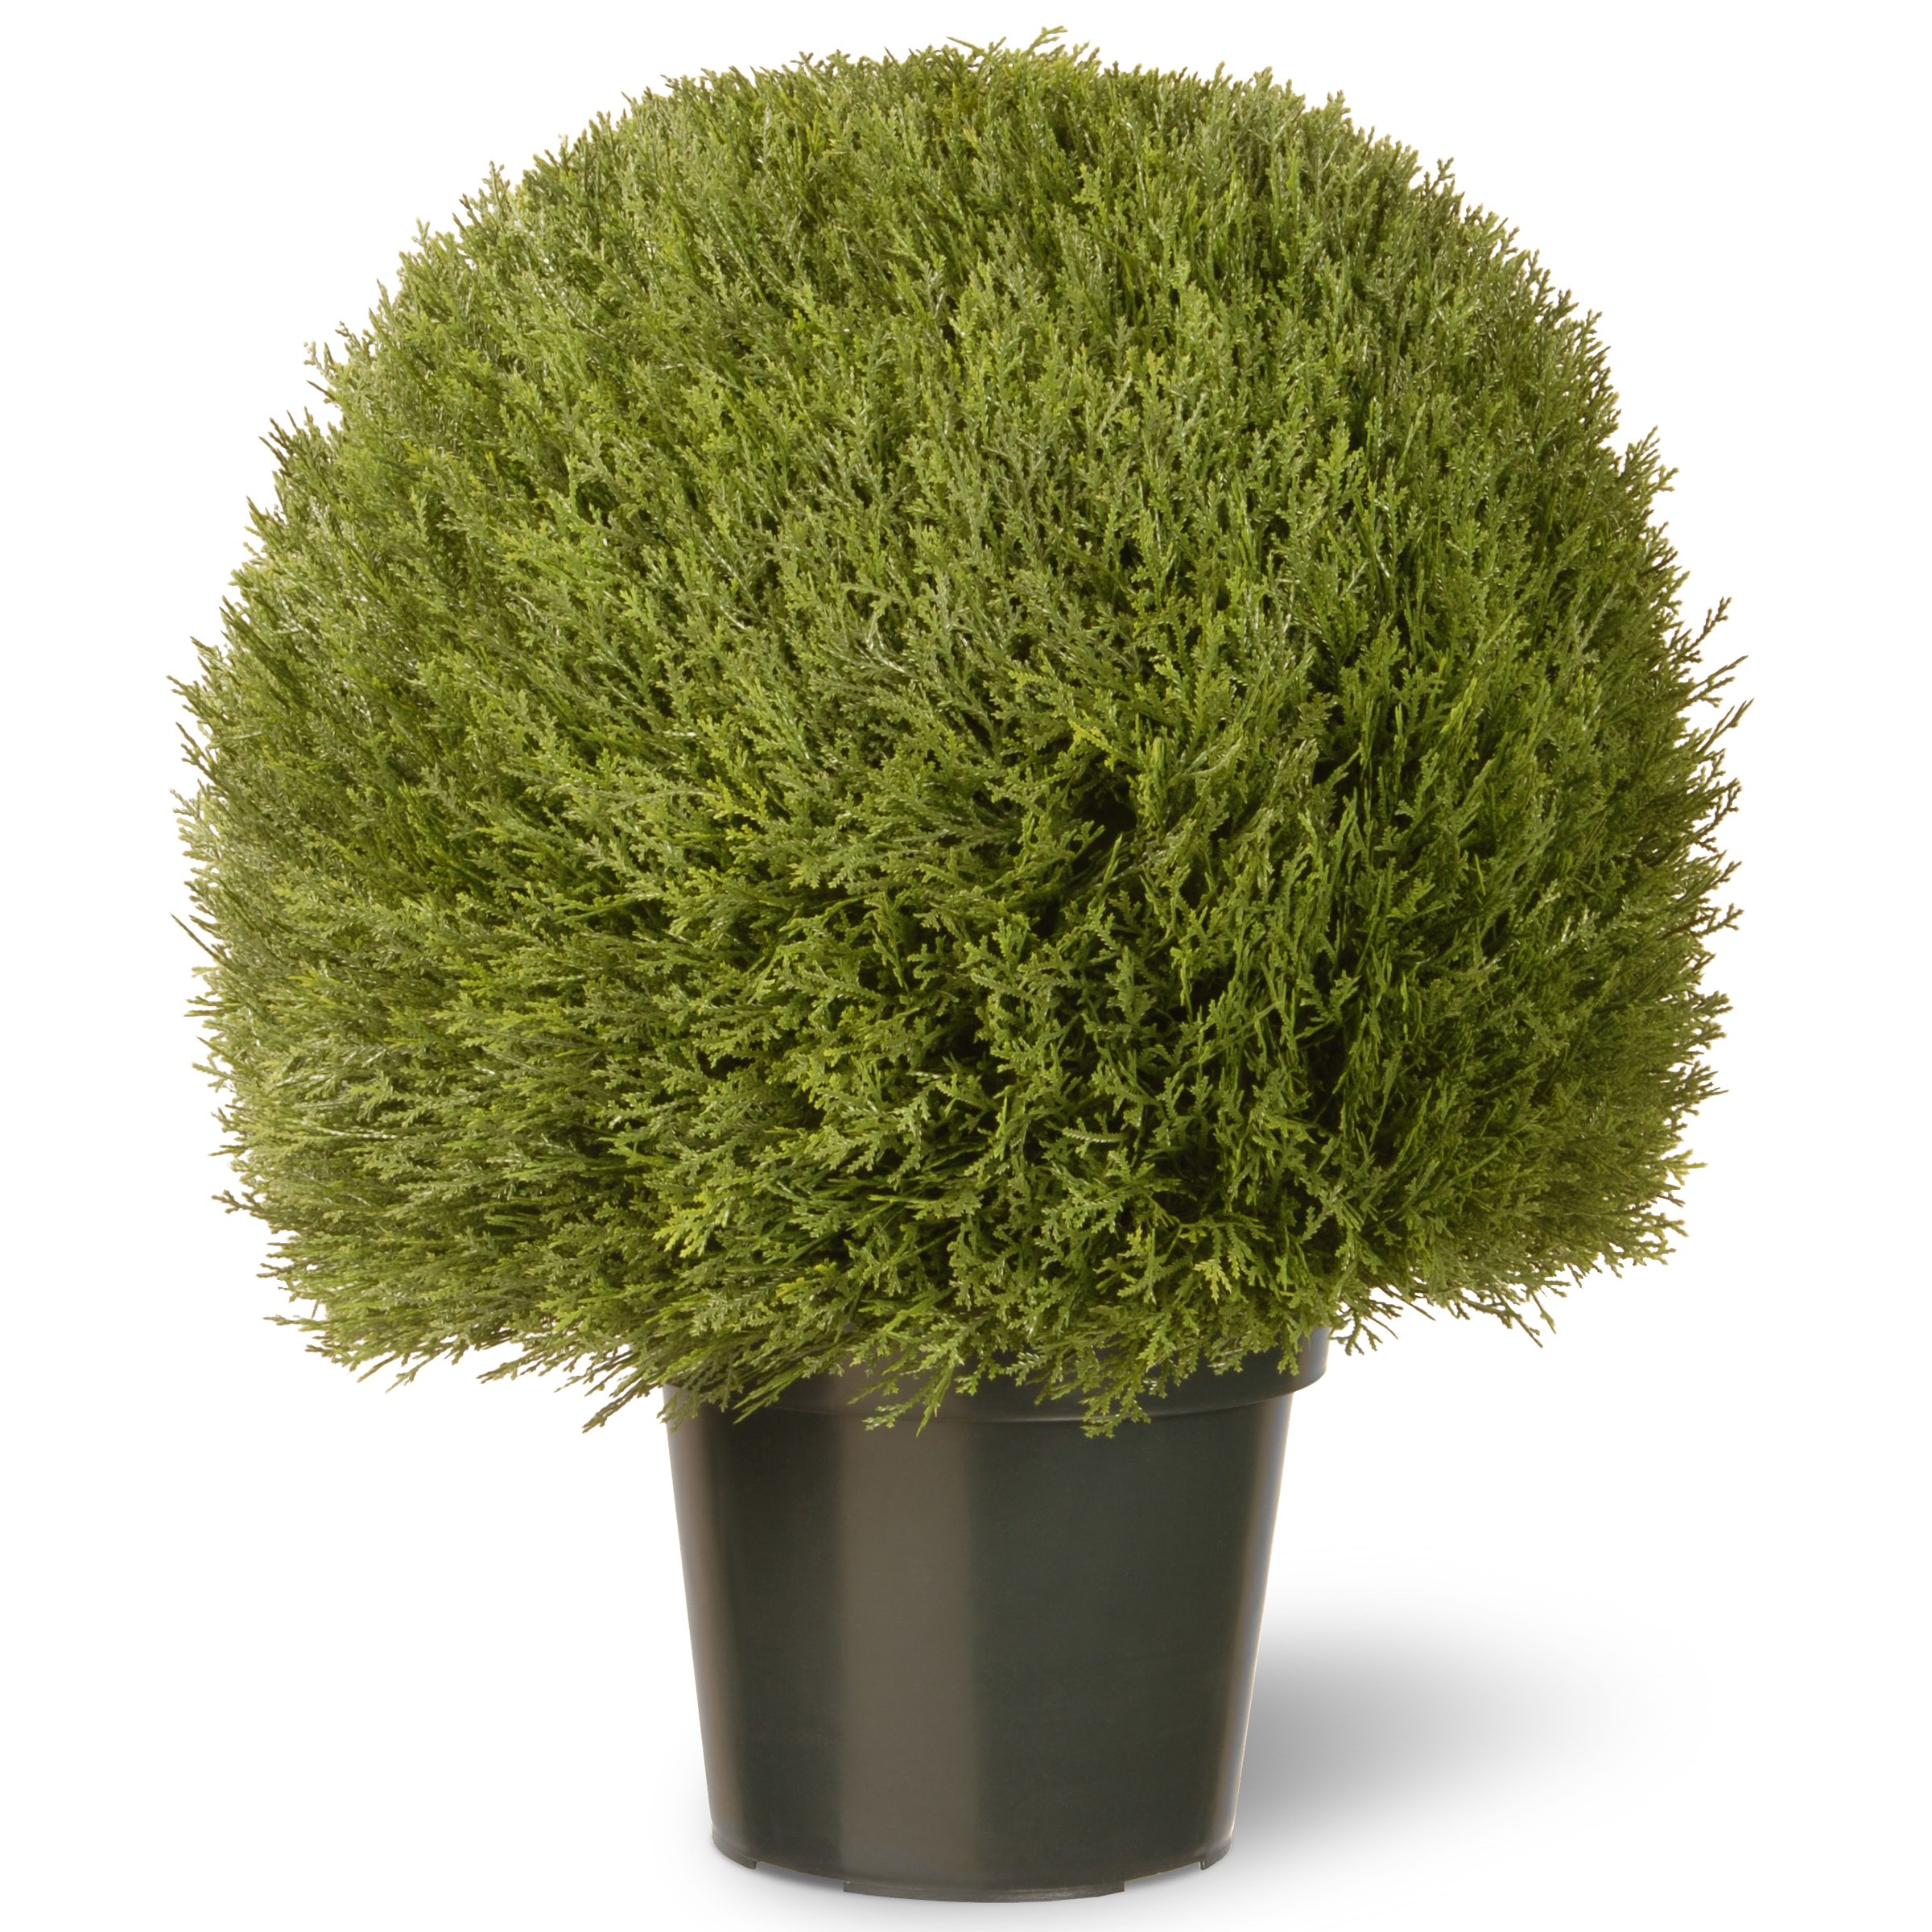 National Tree 24 Inch Cedar Pine Topiary in Green Pot (LCPT4-700-24) by National Tree Company